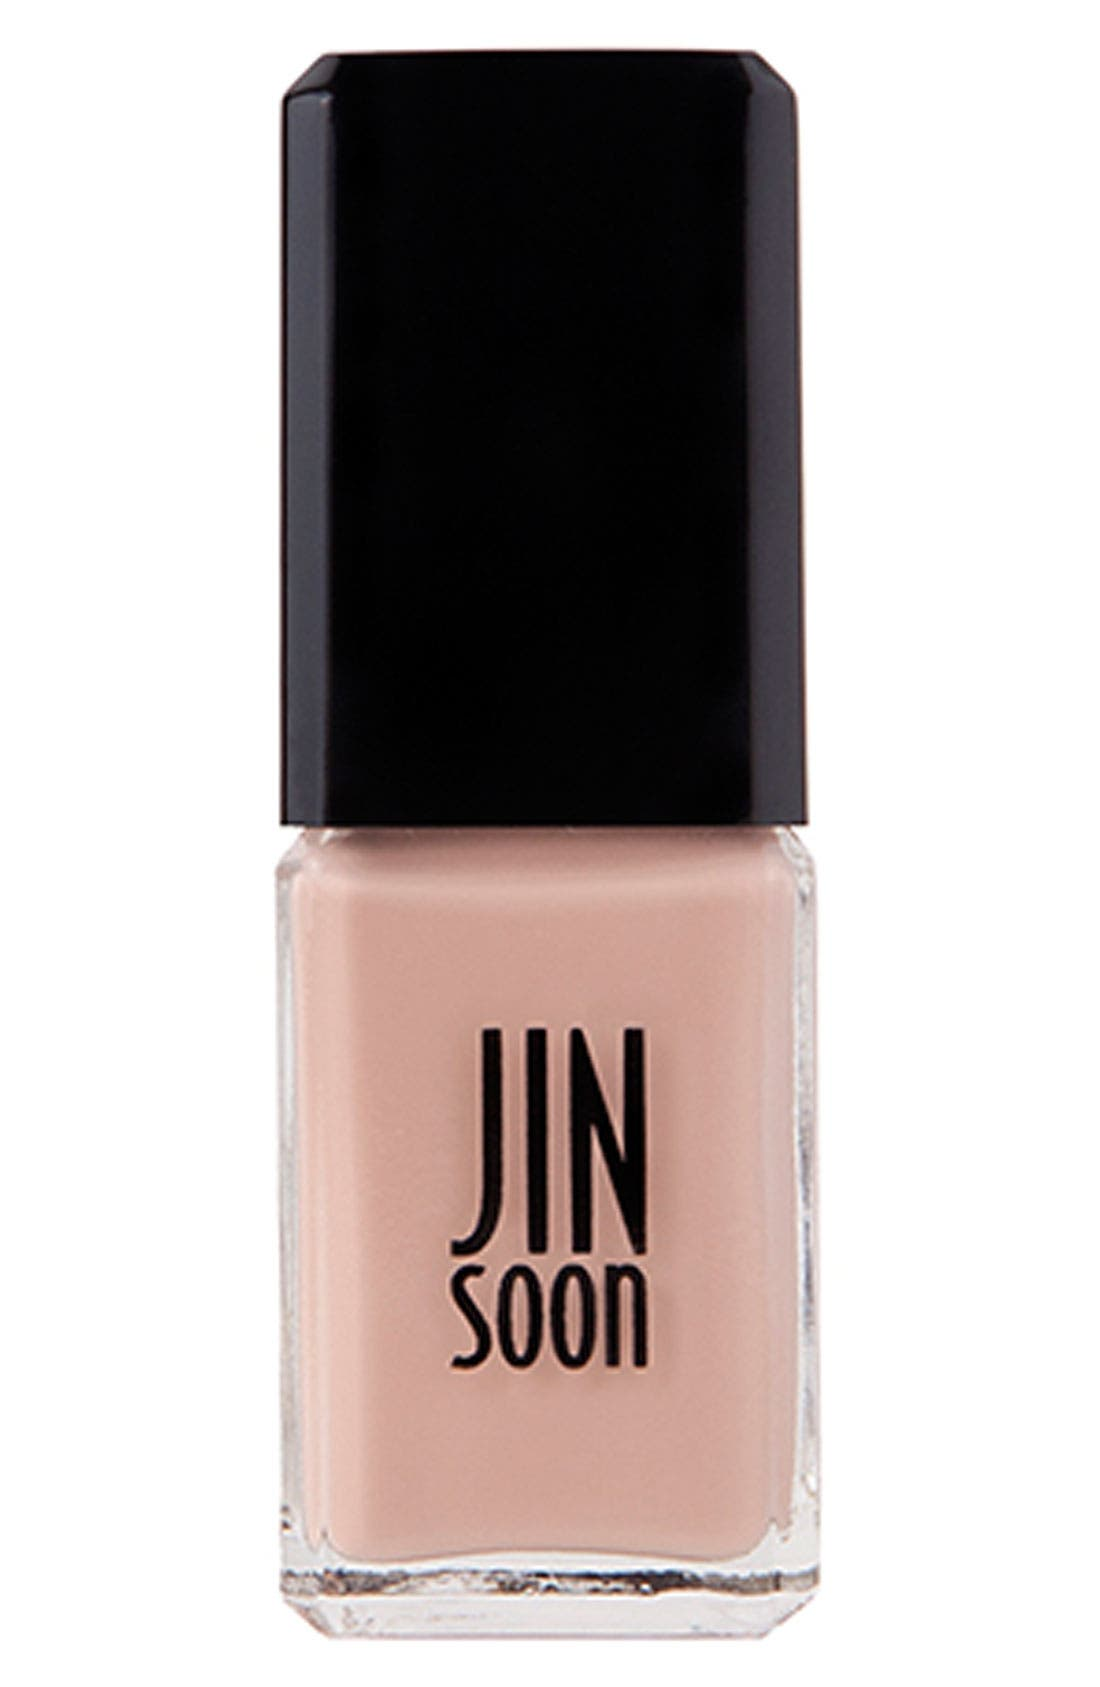 _7483390?fit=fill&fm=jpg&dpr=2&h=368&w=240&quality=45&tradecacheforcash=yes nails, nail polish, nail color, nail care nordstrom  at n-0.co